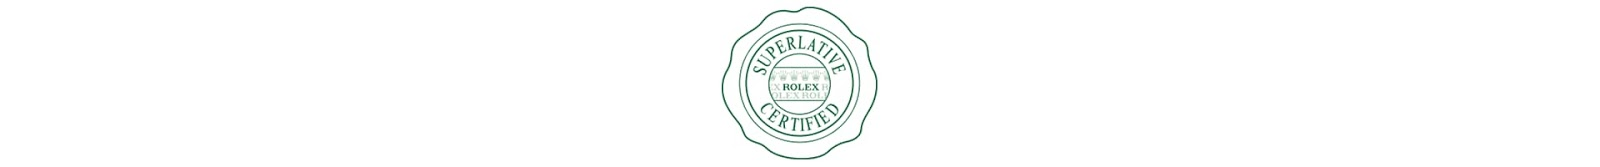 superlative chronometer officially certified